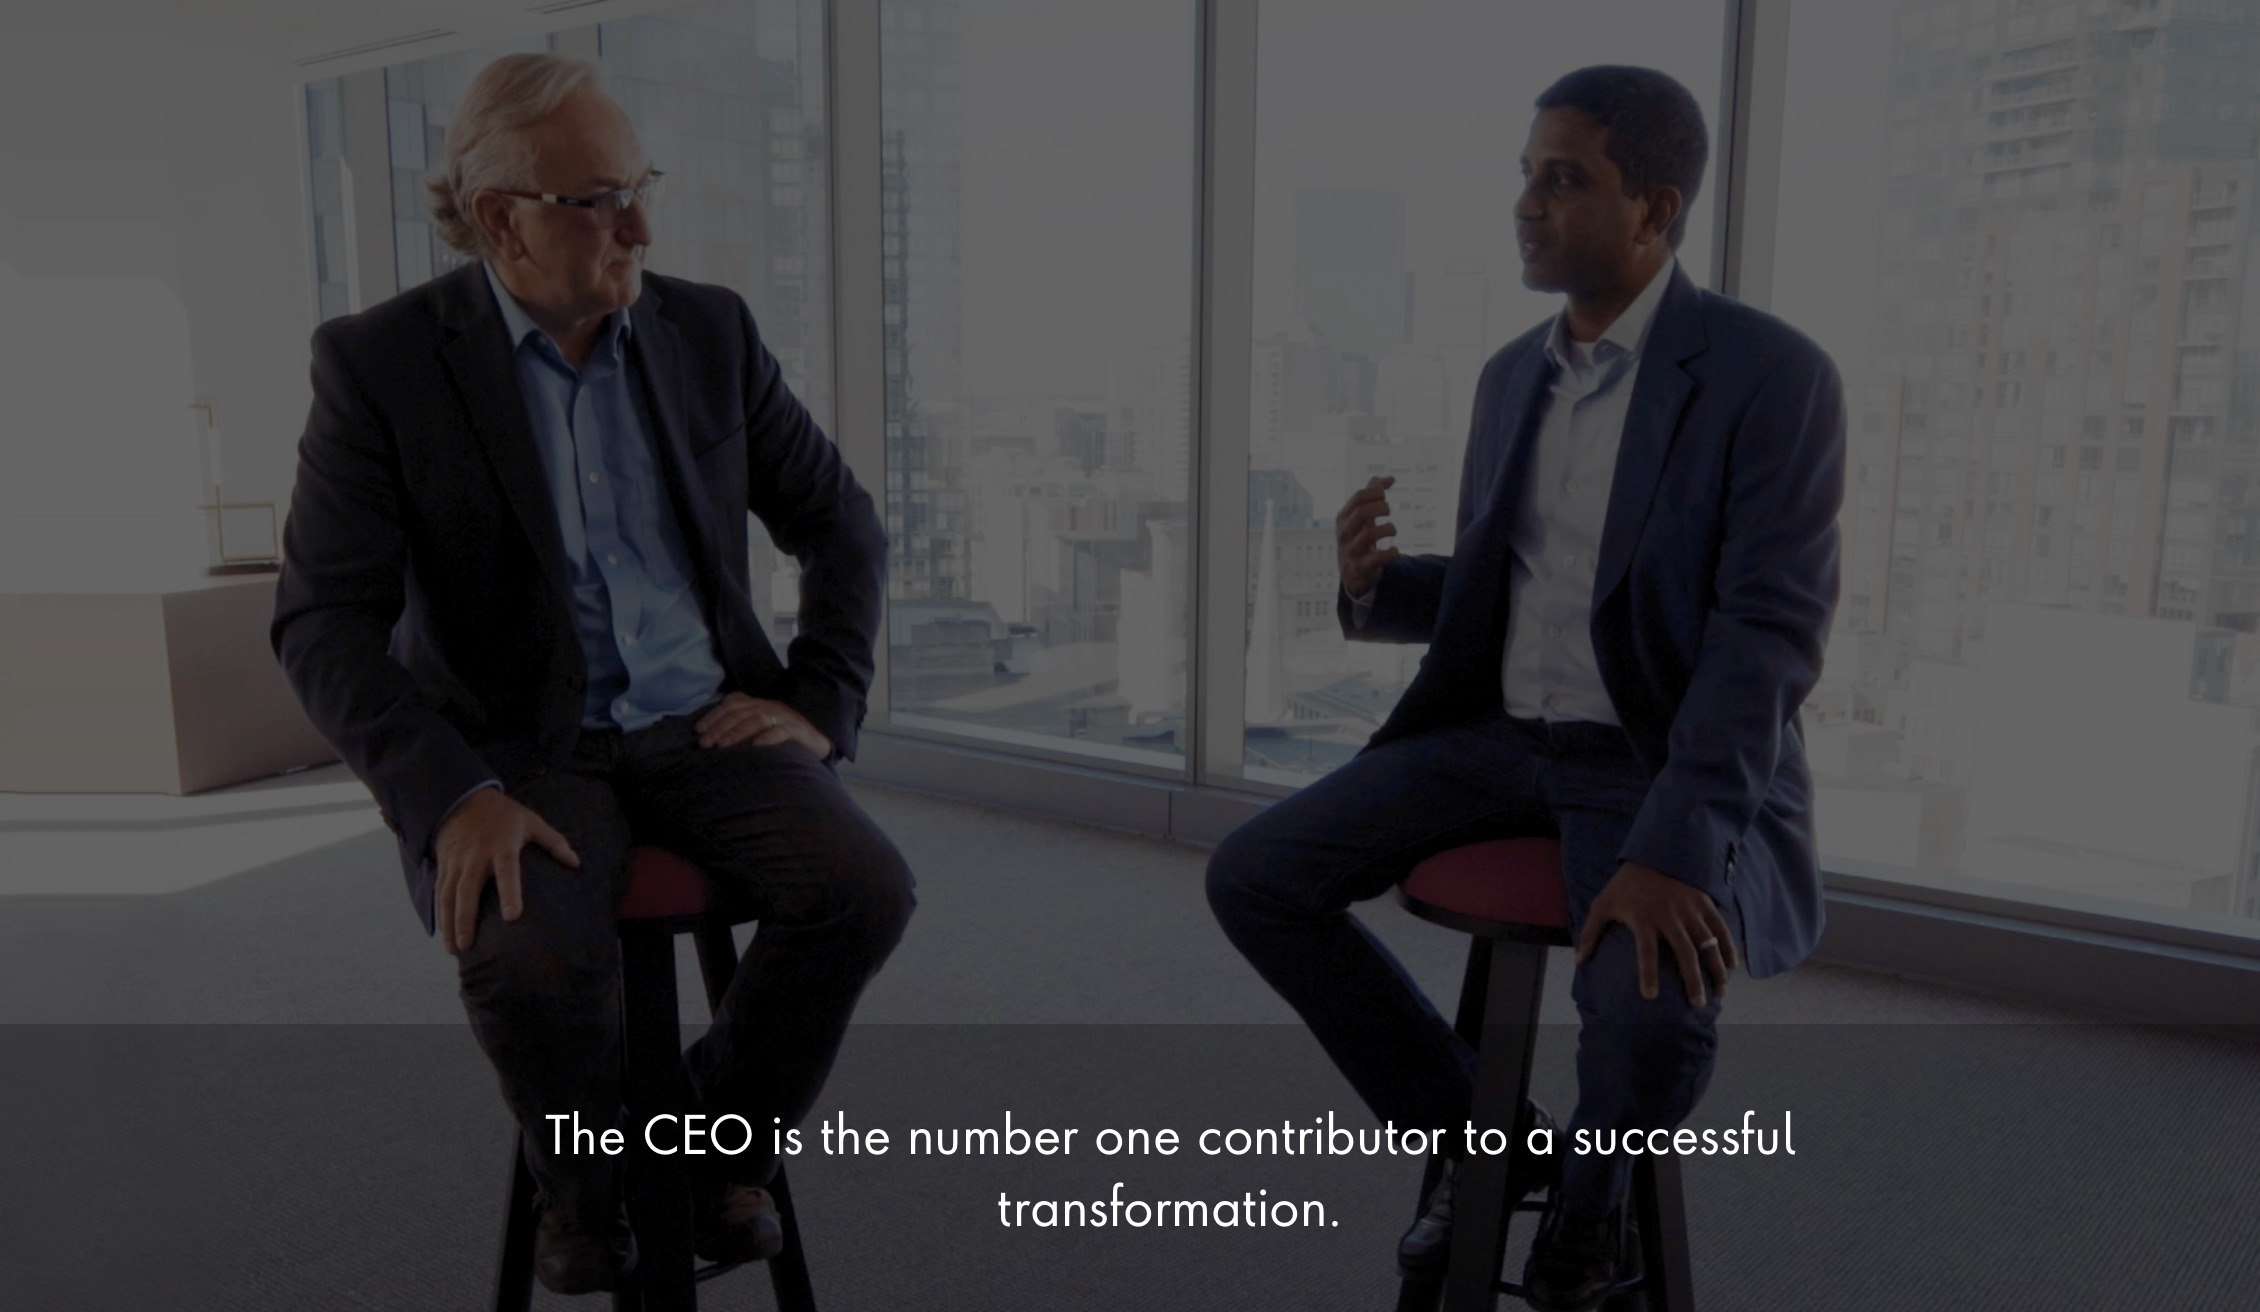 The CEO is the number one contributor to a successful transformation.